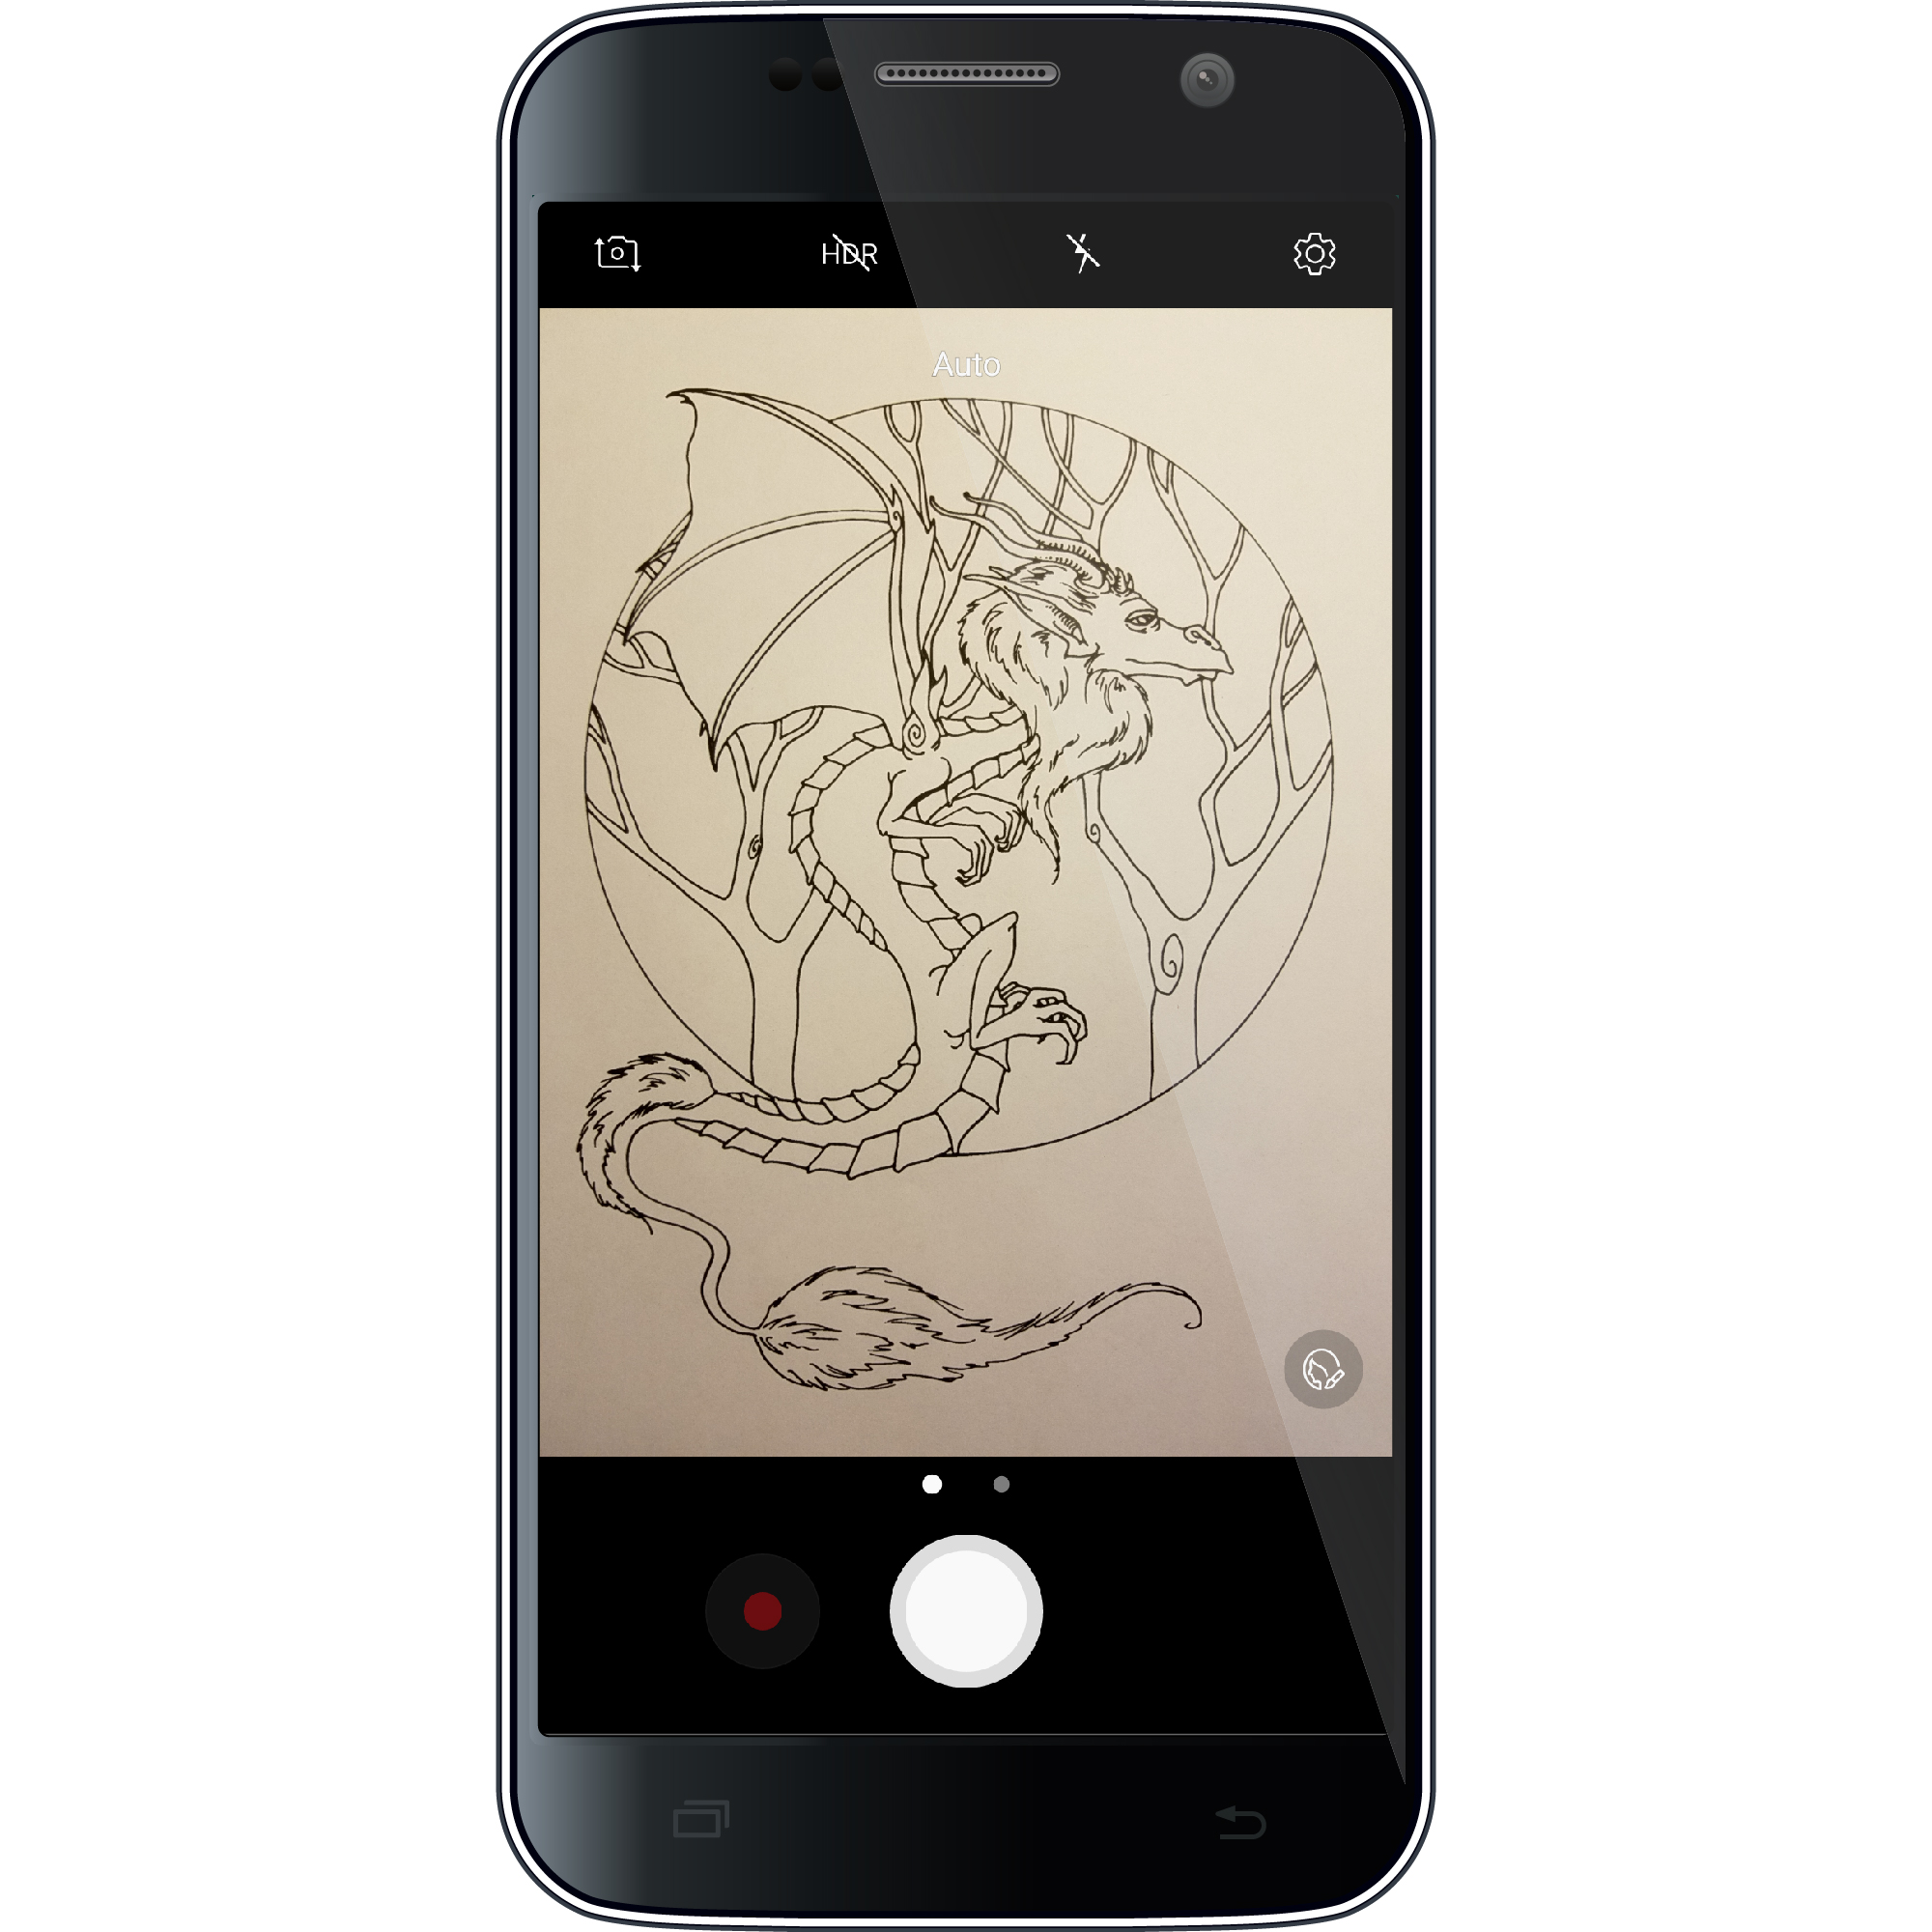 Take A Picture - Another option for importing is by taking a picture with your device's camera.This option is great if you have coloring books you want to color in Pigment.